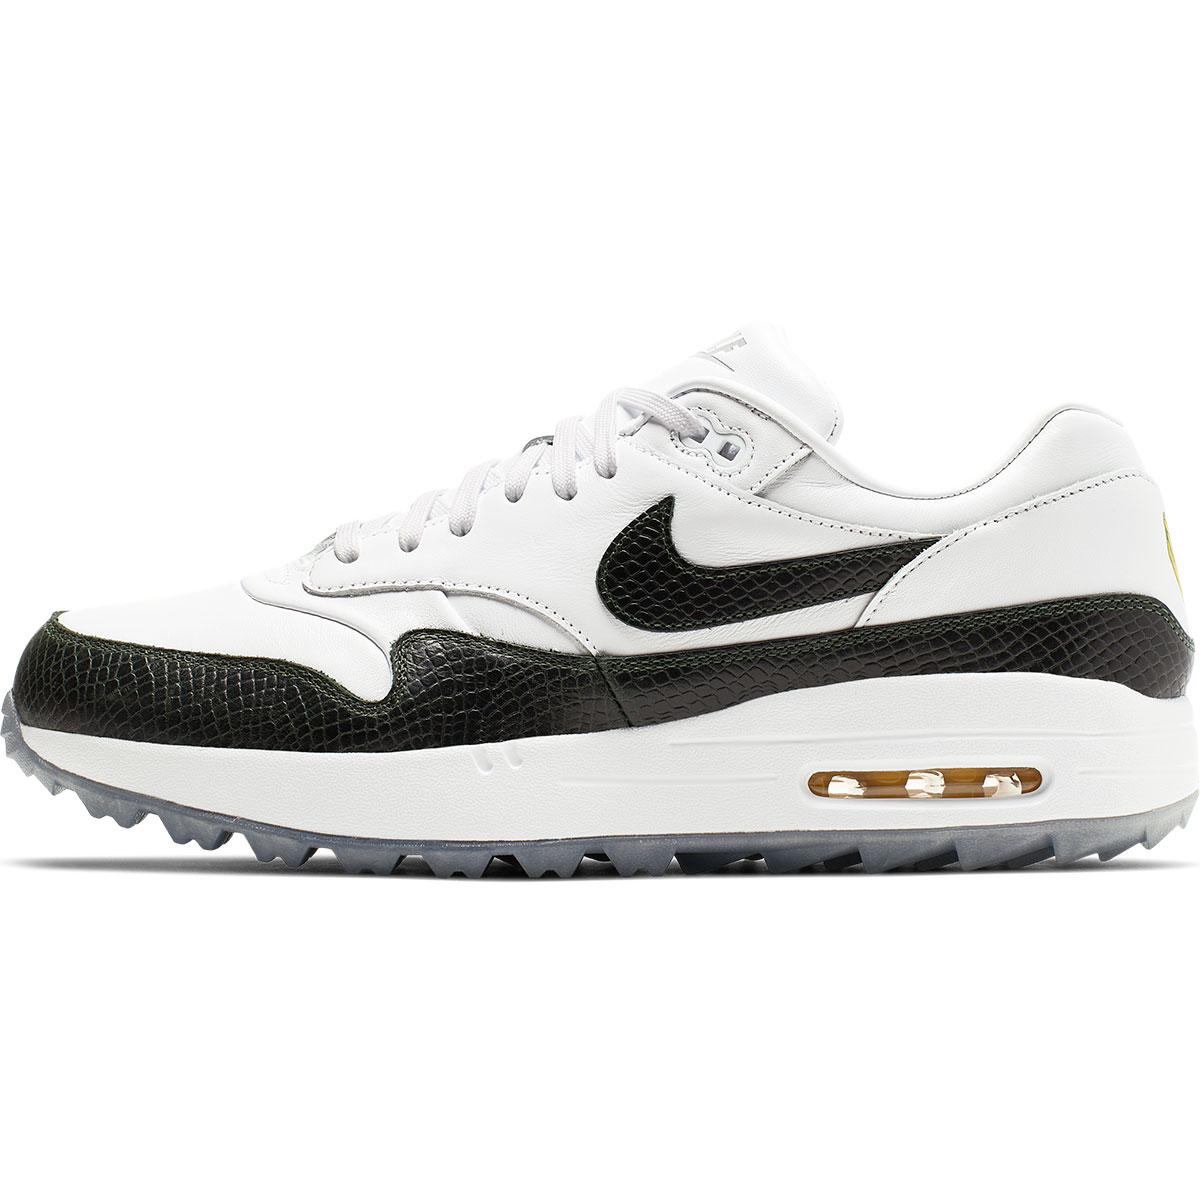 4dc26e092 Nike Golf Air Max 1G NRG Shoes from american golf